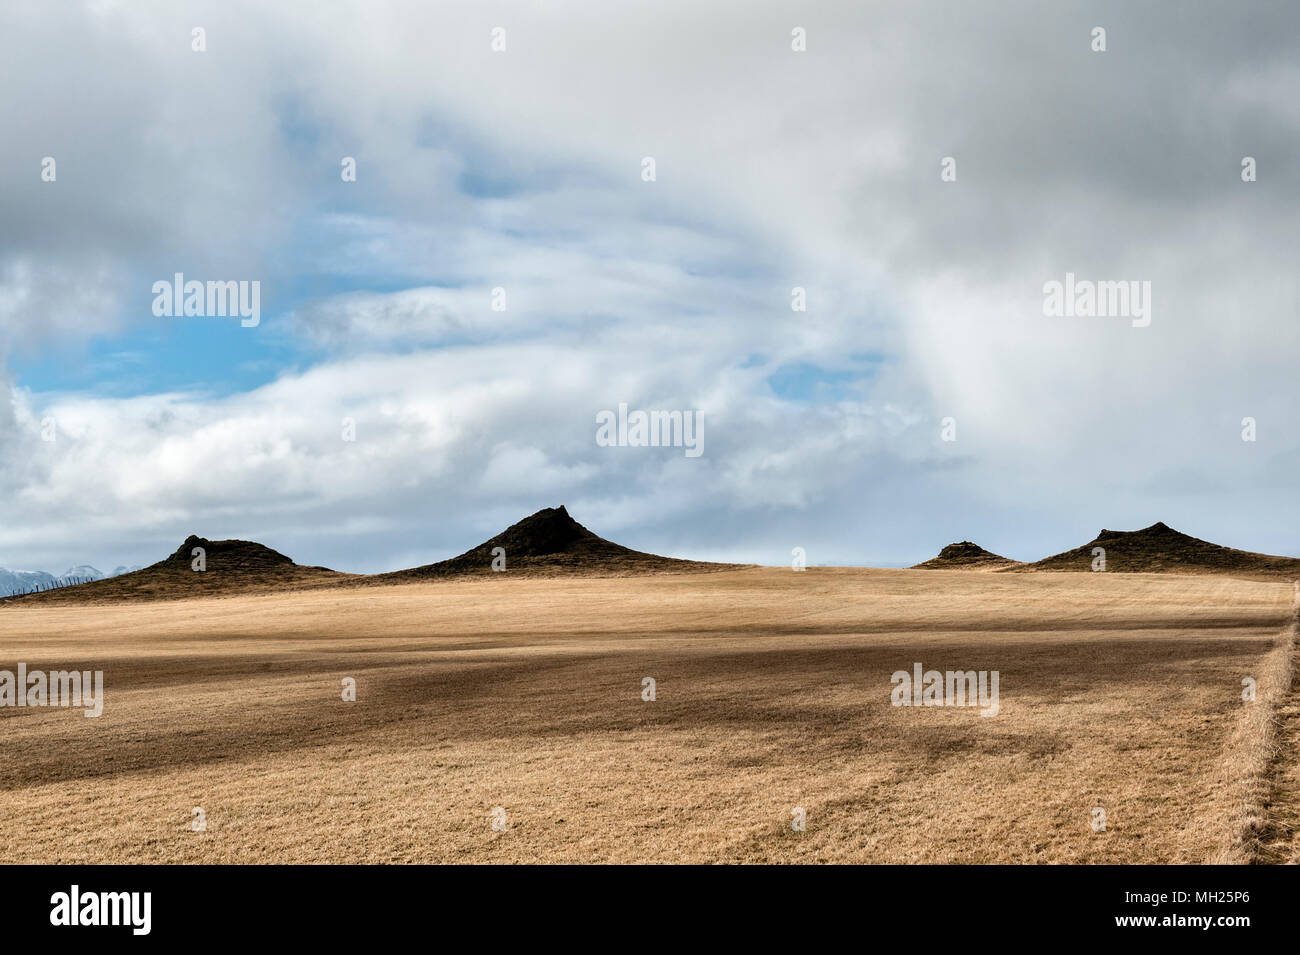 South Iceland, near Kirkjubæjarklaustur on the Ring Road. An area of rootless cones or pseudocraters, formed when lava flows over wet ground - Stock Image